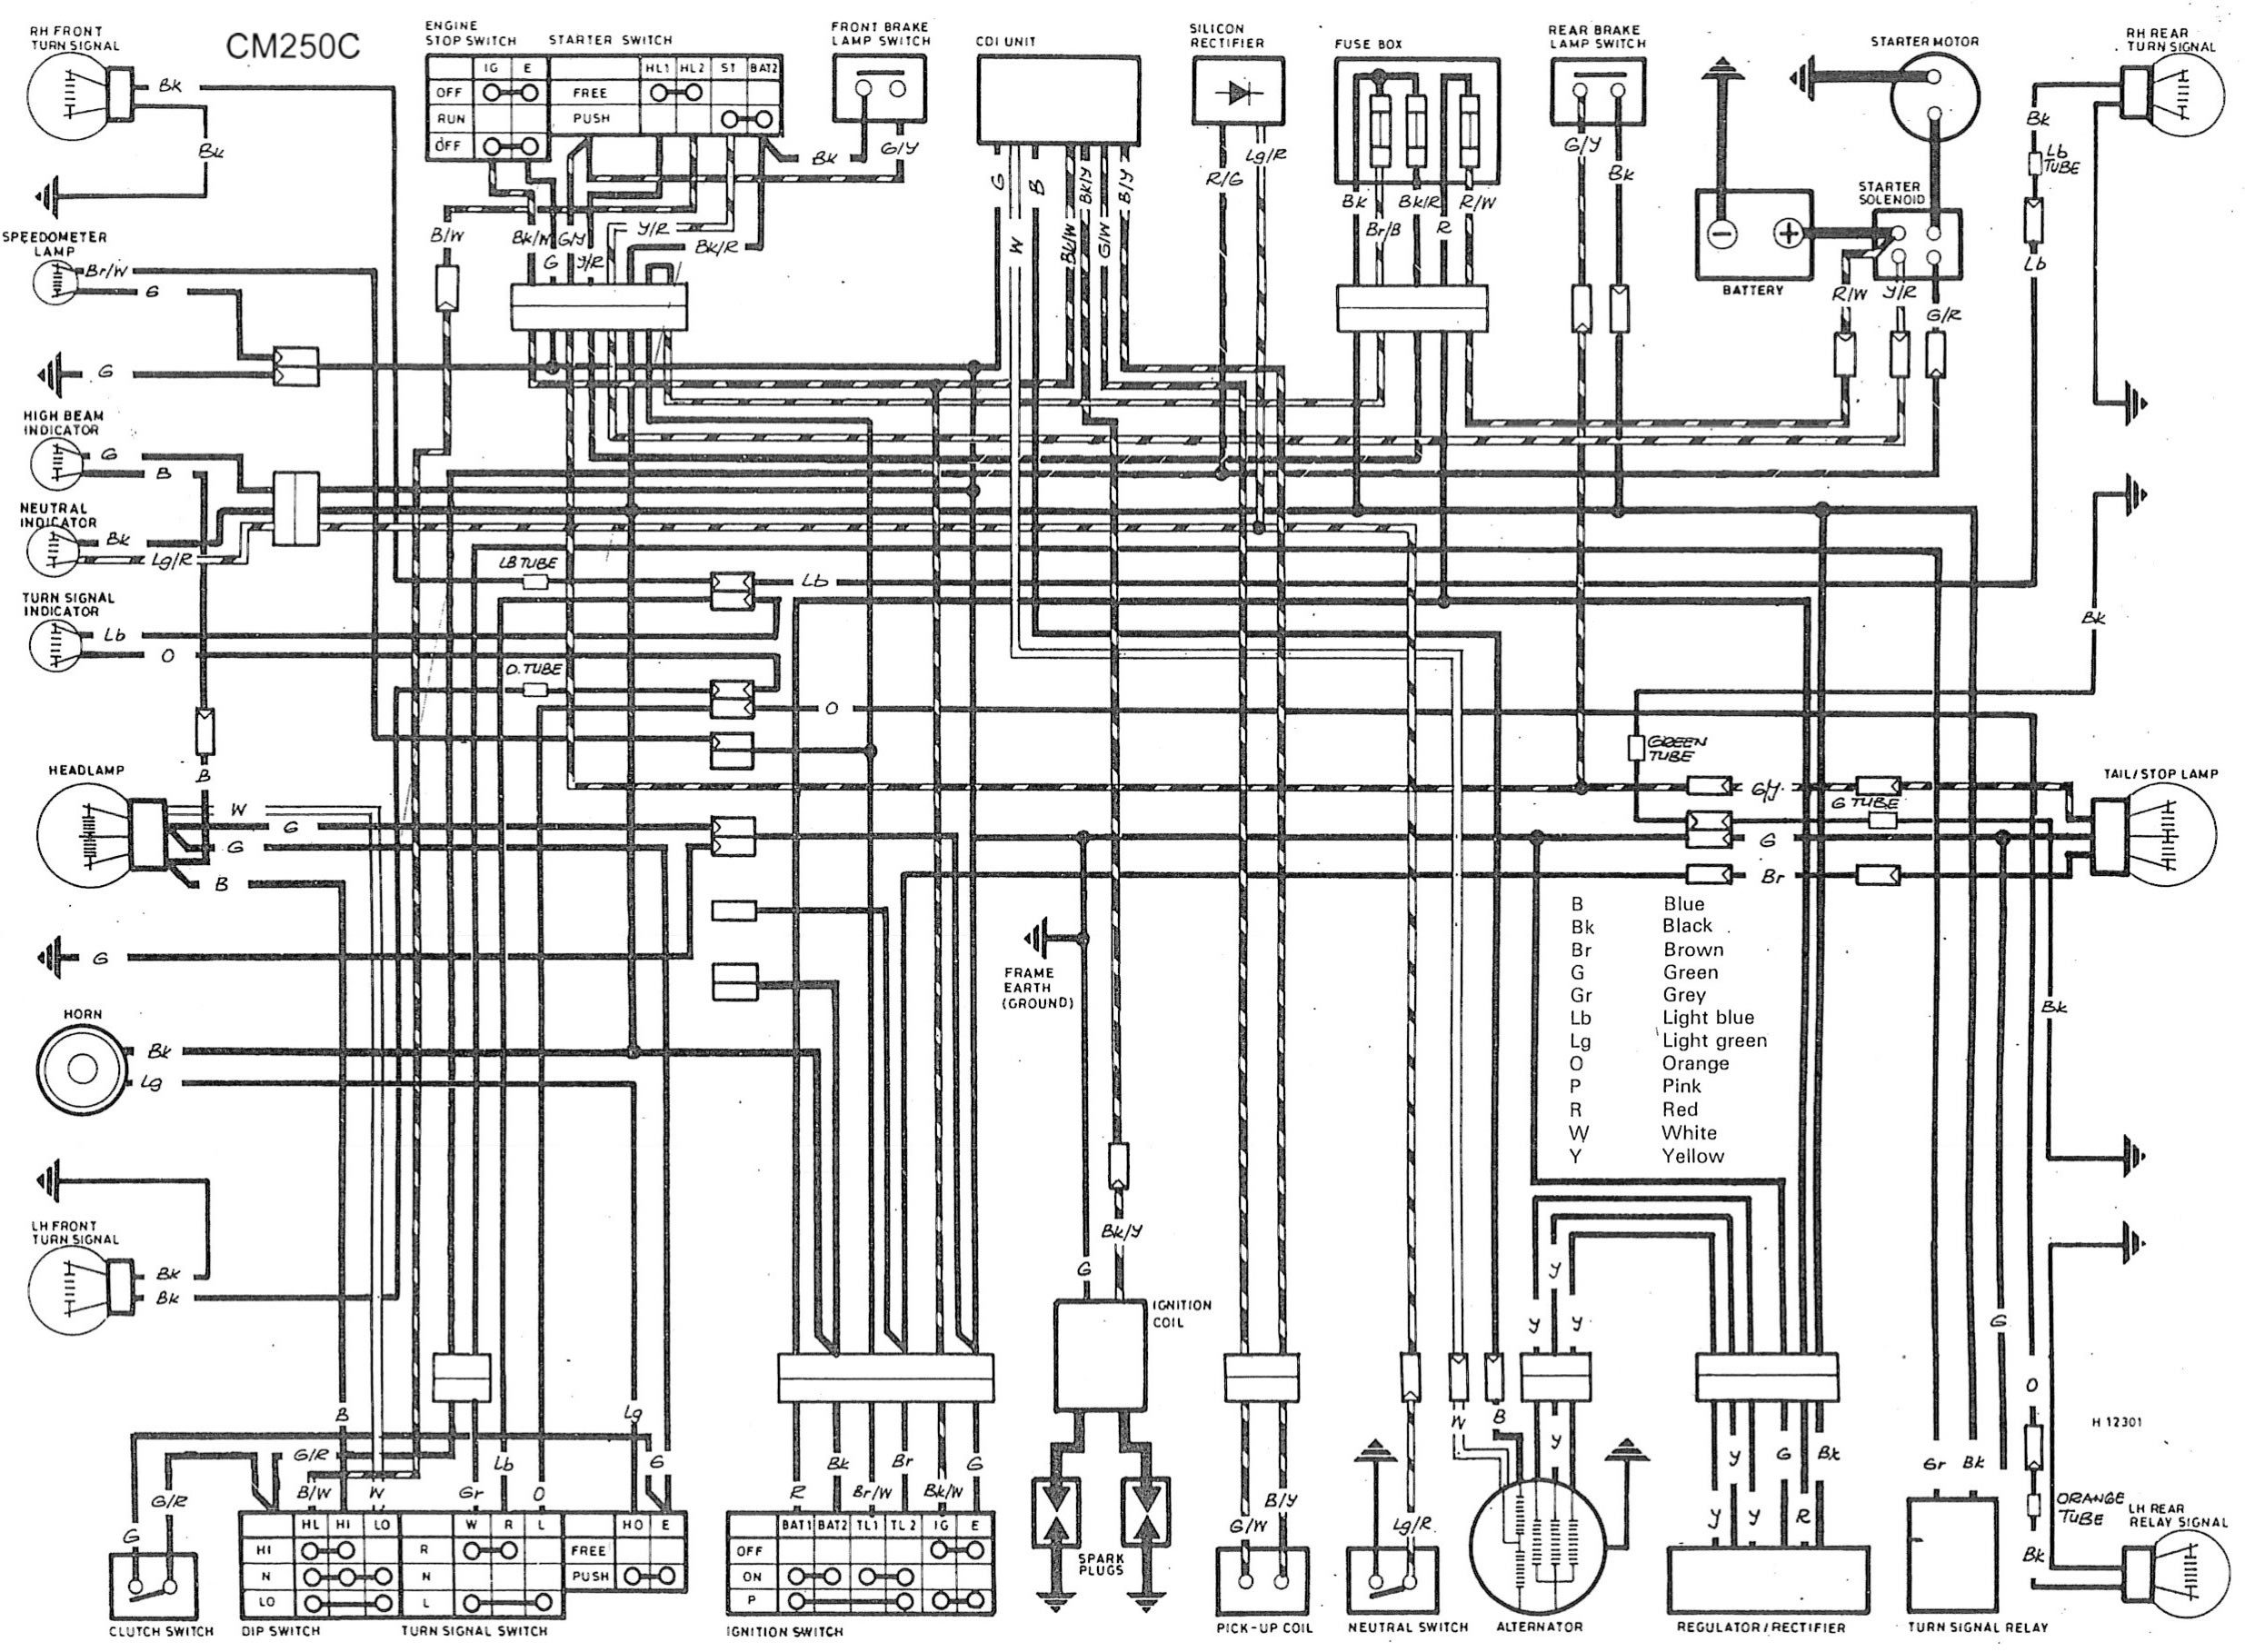 1975 Cb550f Wiring Diagram | Wiring Diagram on